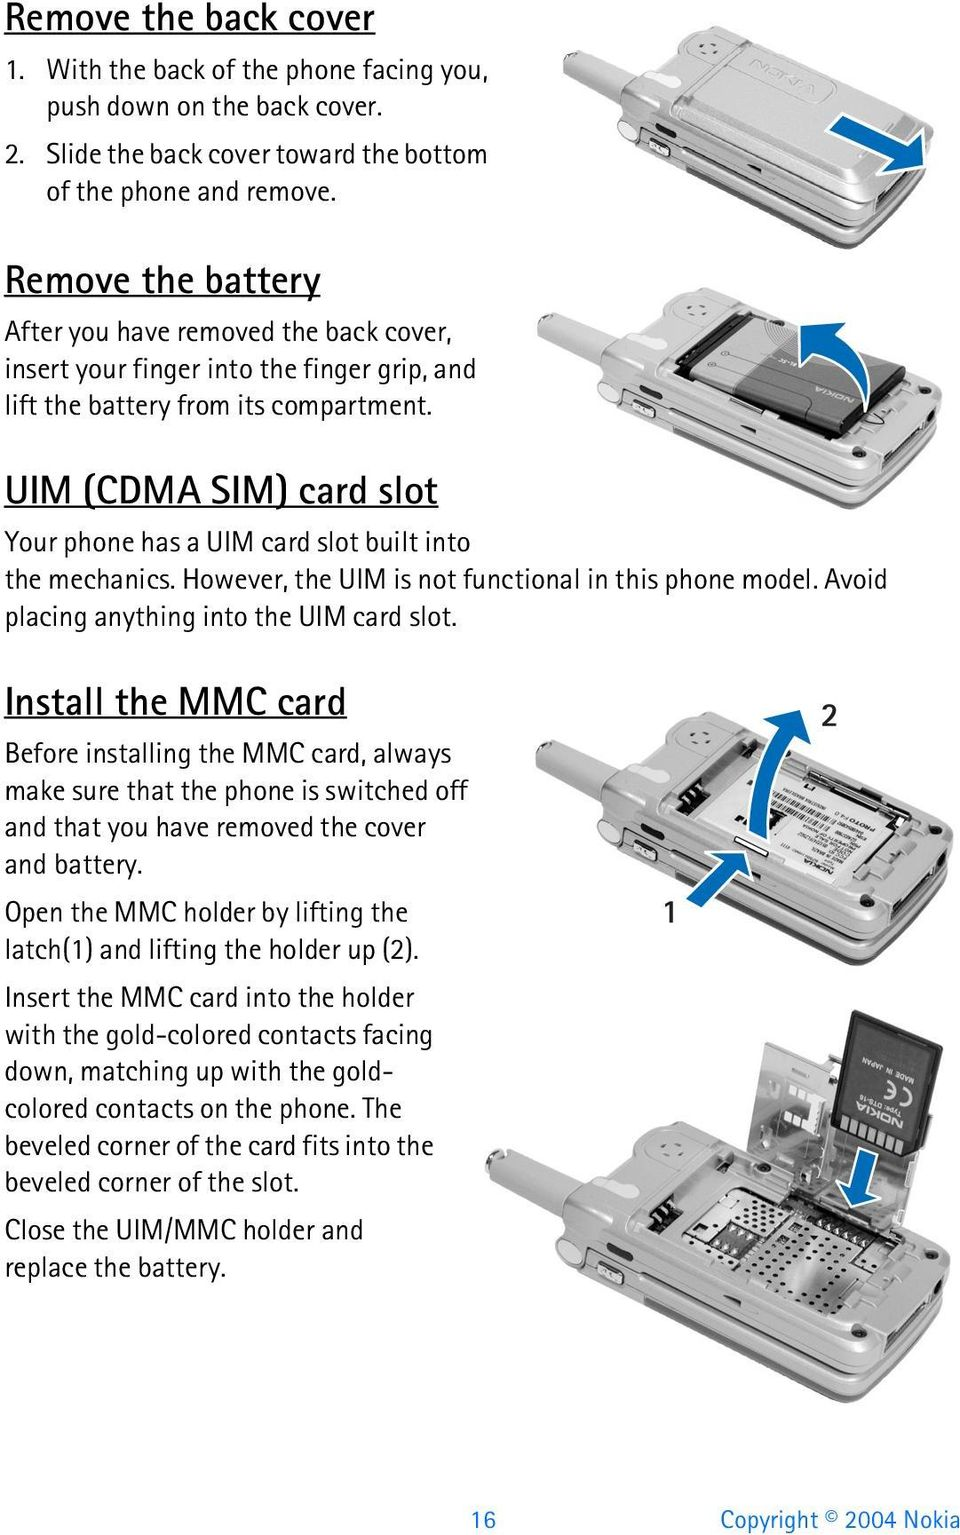 UIM (CDMA SIM) card slot Your phone has a UIM card slot built into the mechanics. However, the UIM is not functional in this phone model. Avoid placing anything into the UIM card slot.